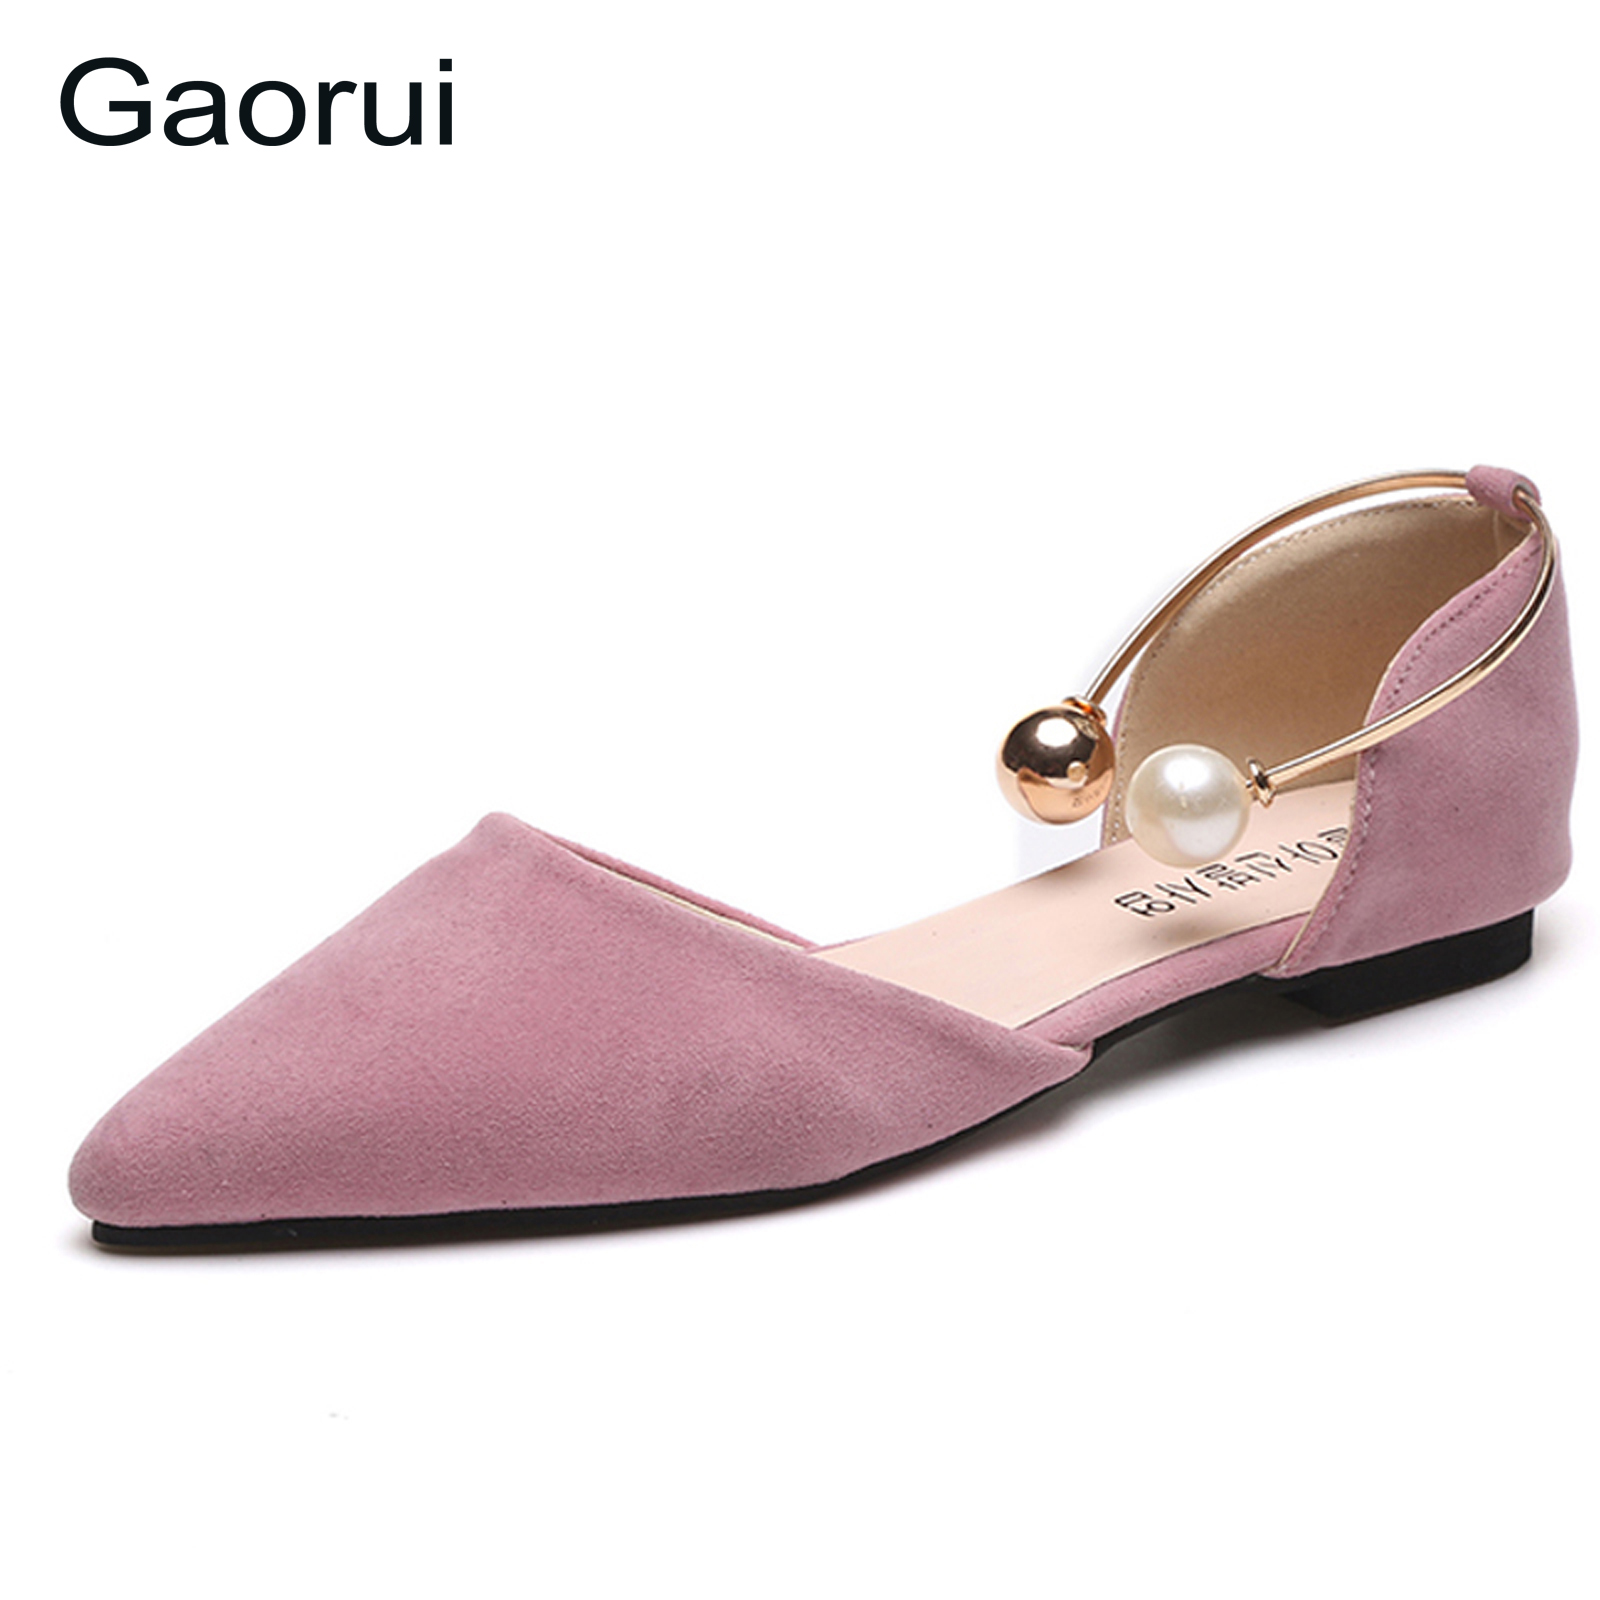 GAORUI 2017 New Women Fashion Shoes Casual Pearl Flats Pointed Toe Suede loafers flats Comfortable Shallow Mouth Single Shoe yiqitazer 2017 new summer slipony lofer womens shoes flats nice ladies dress pointed toe narrow casual shoes women loafers